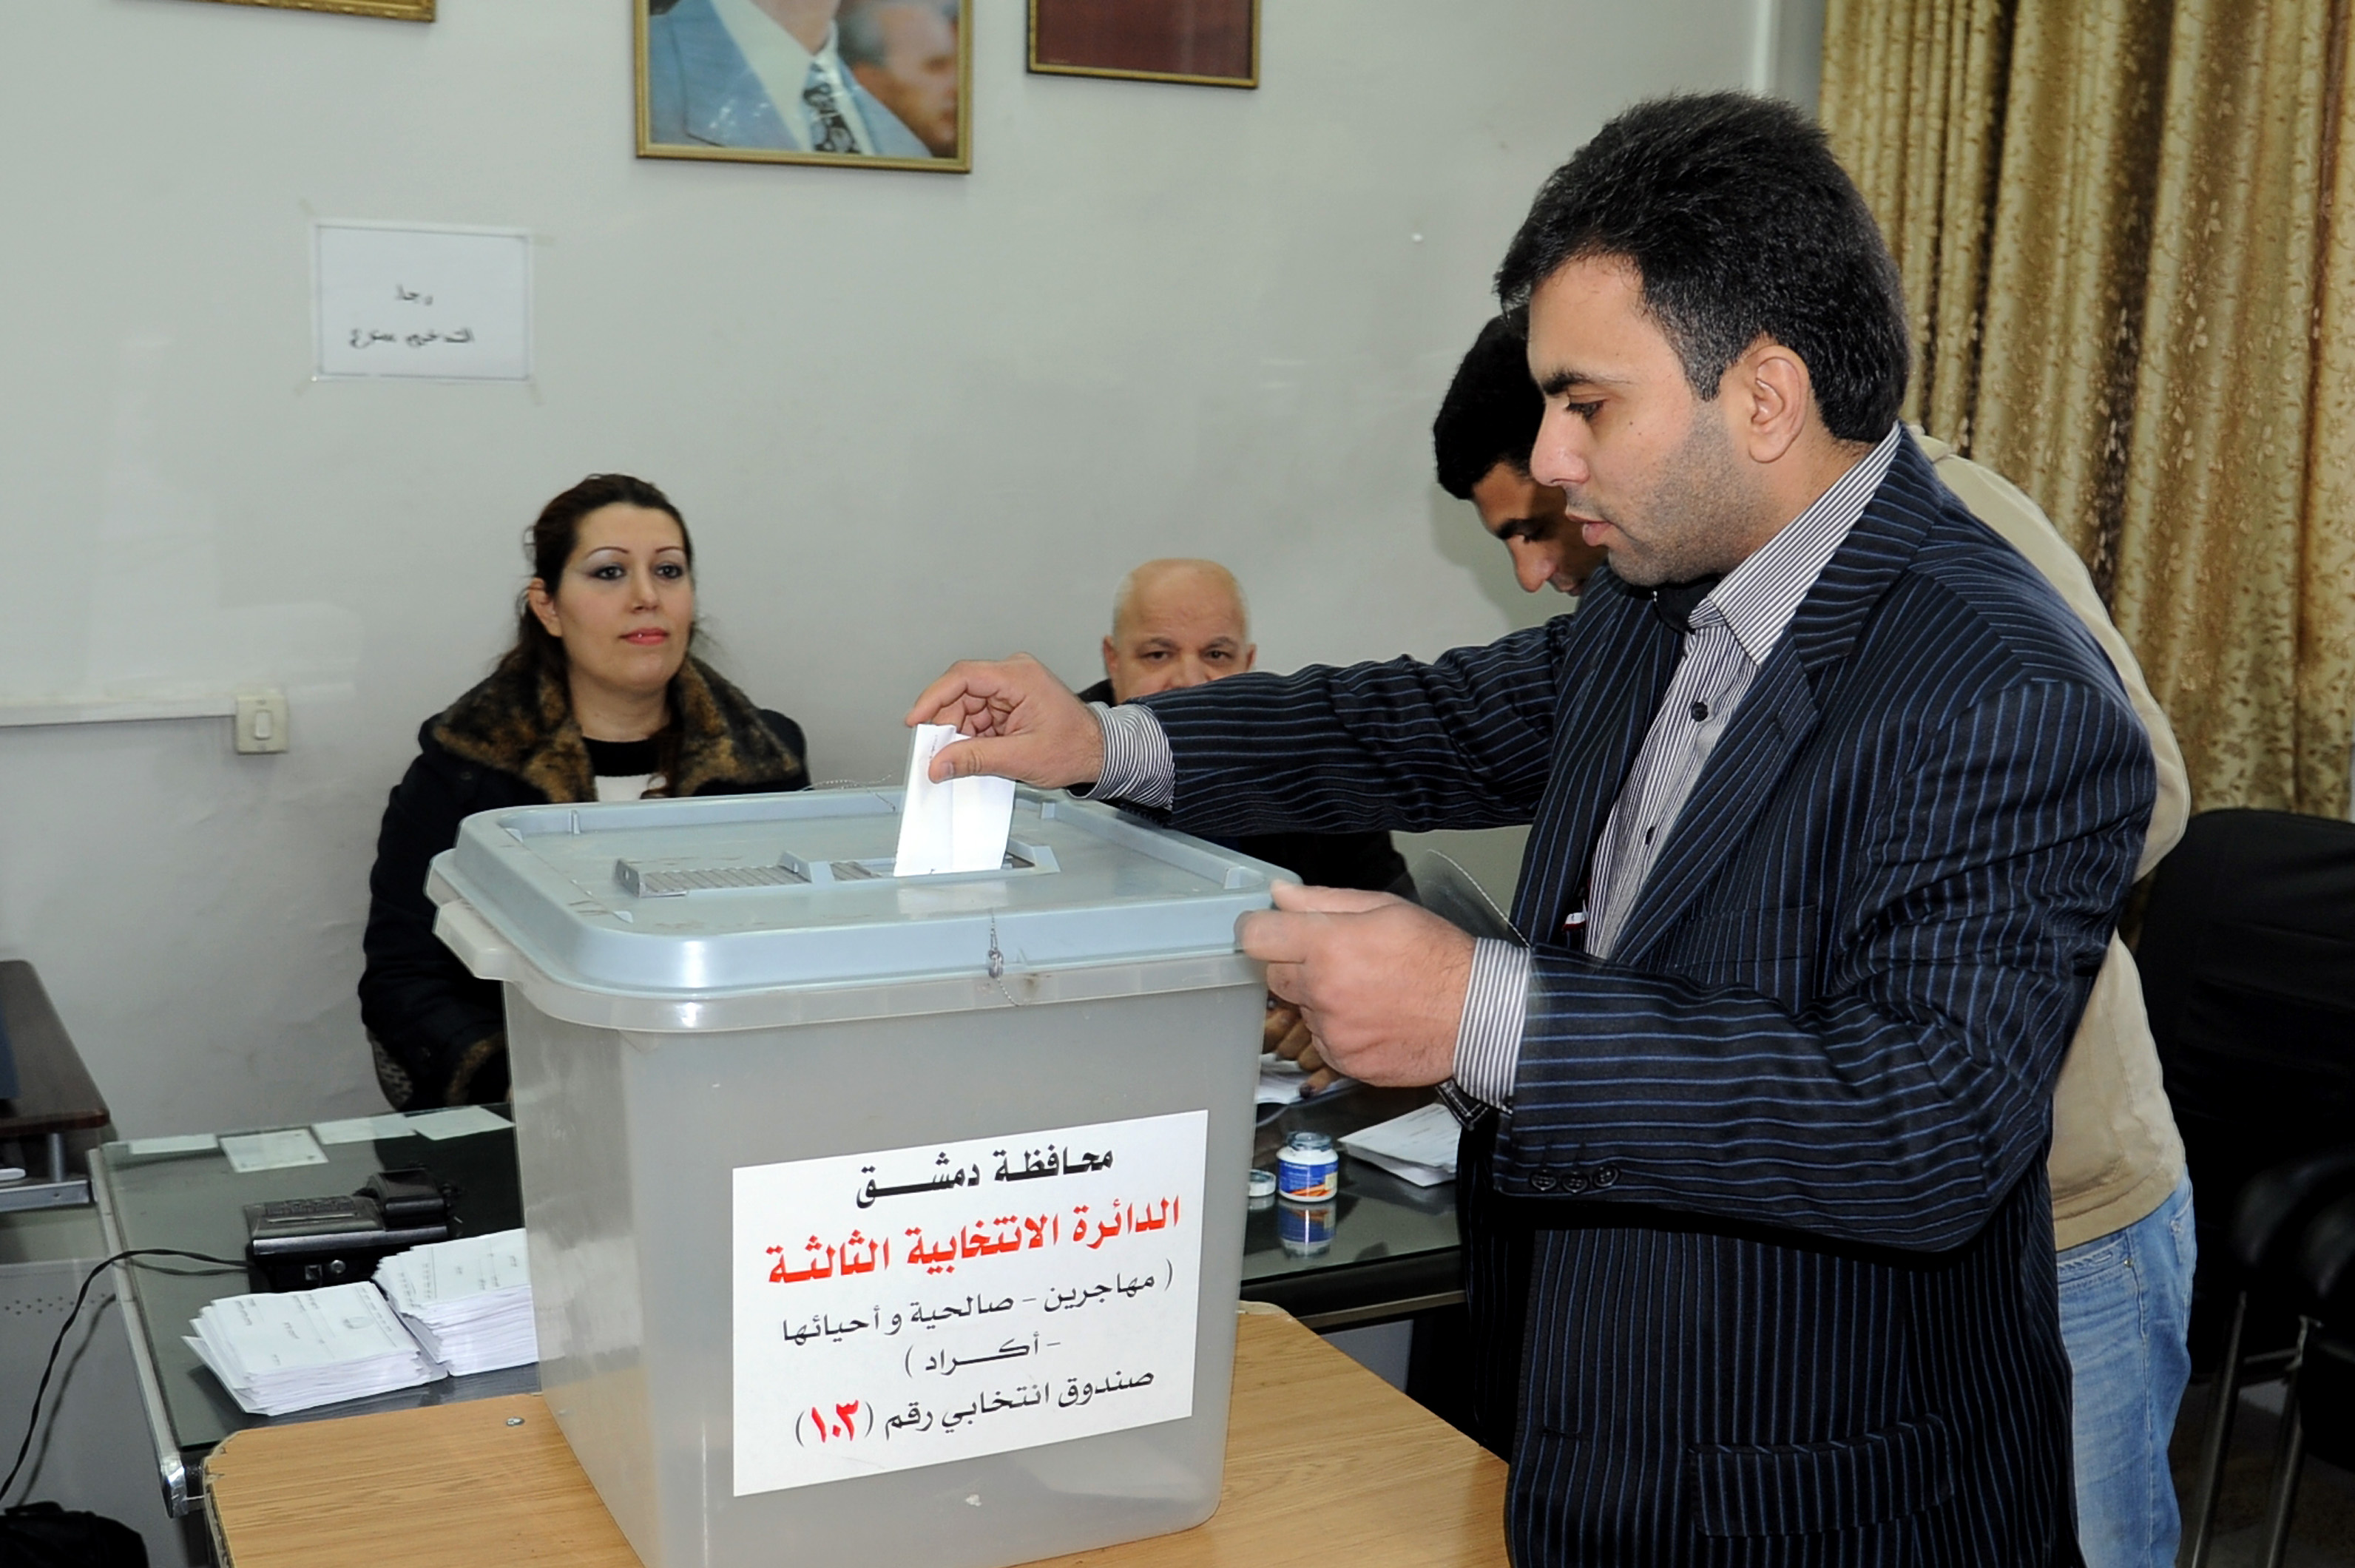 Preparations for local administration elections in Quneitra. Saturday, 19 September 2018